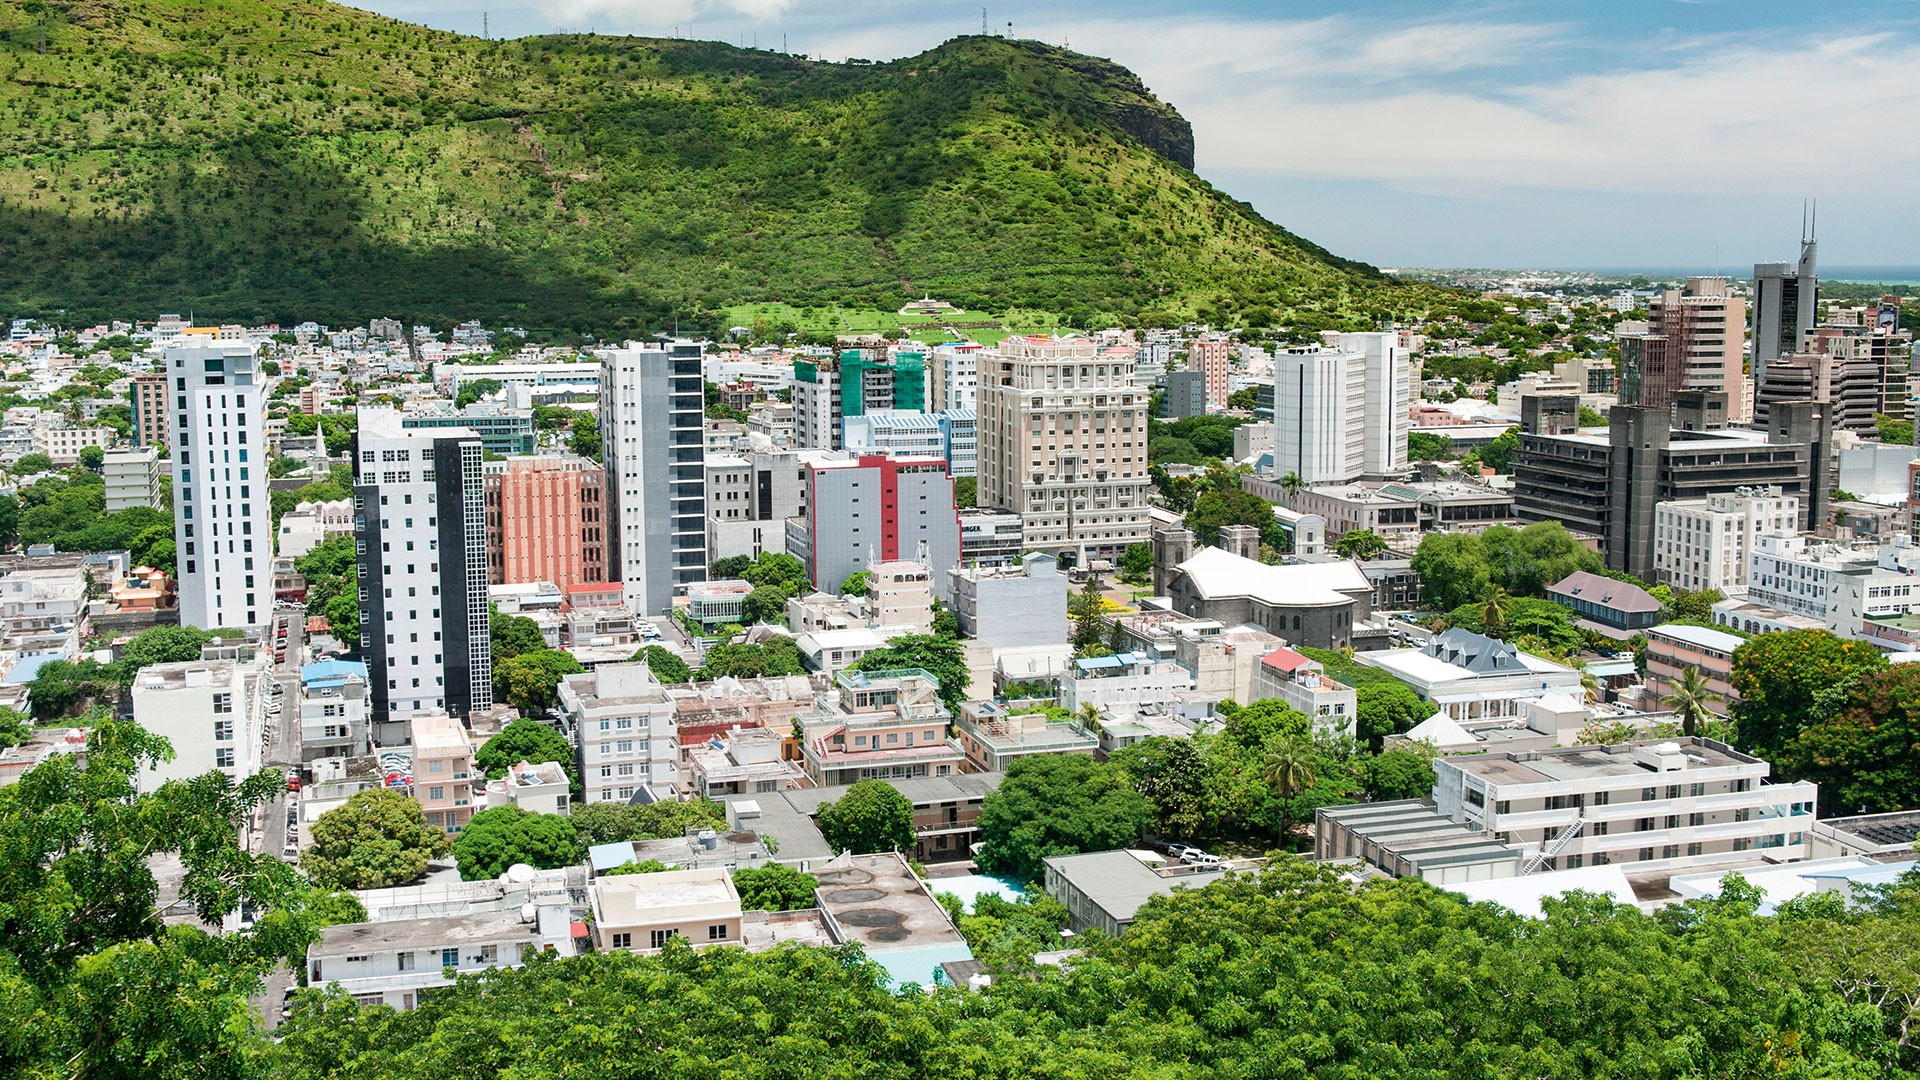 Port Louis, capital of Mauritius